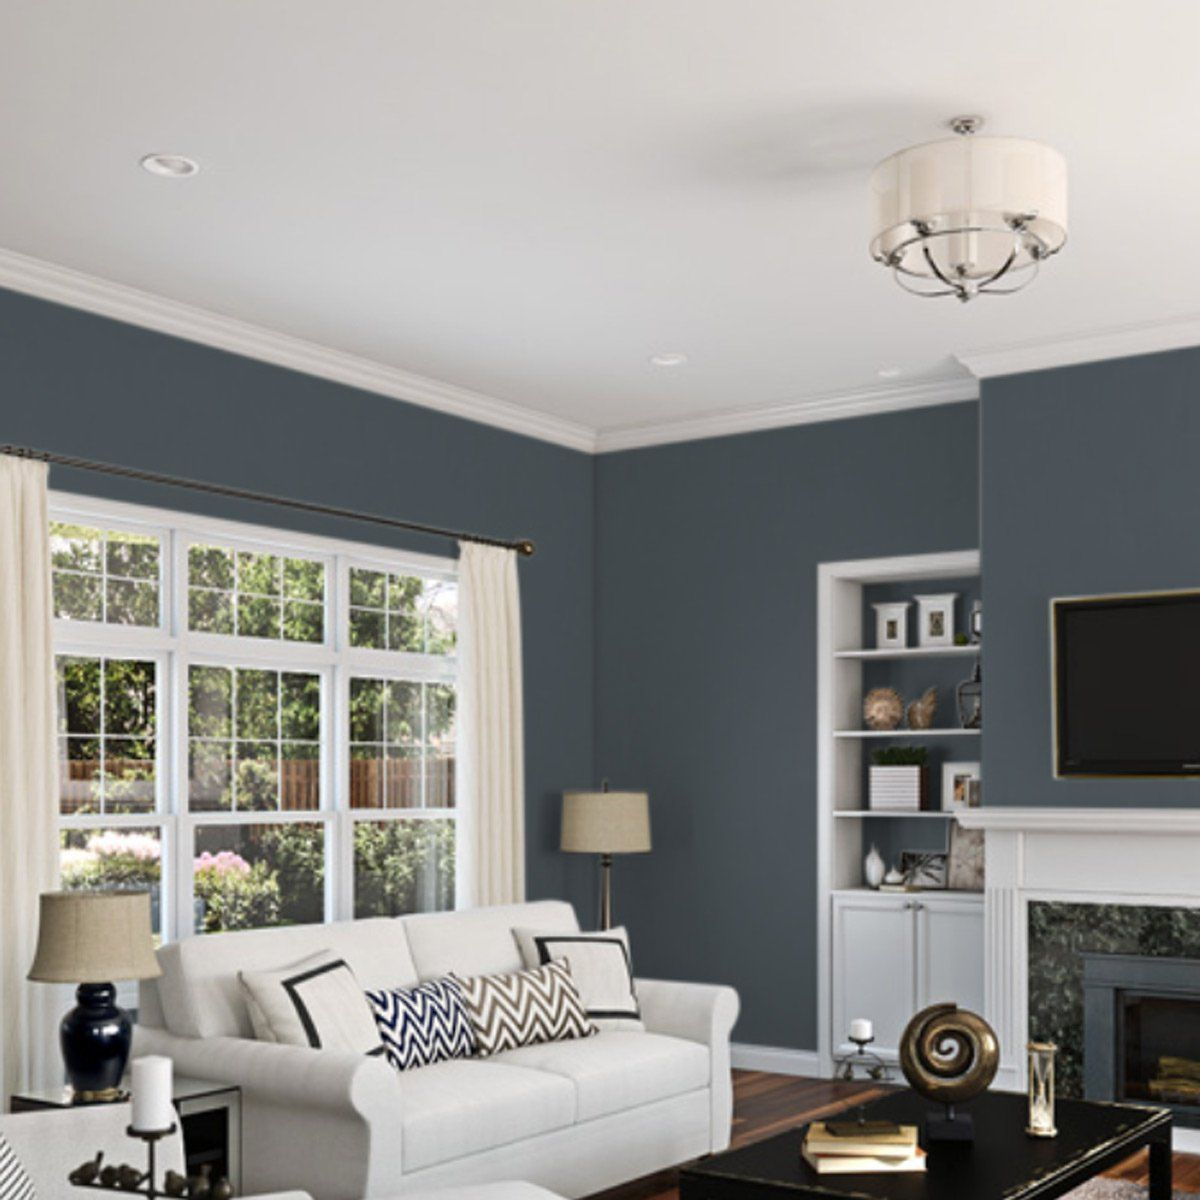 find the best wall paint colors for your interior walls on best interior wall paint colors id=44409